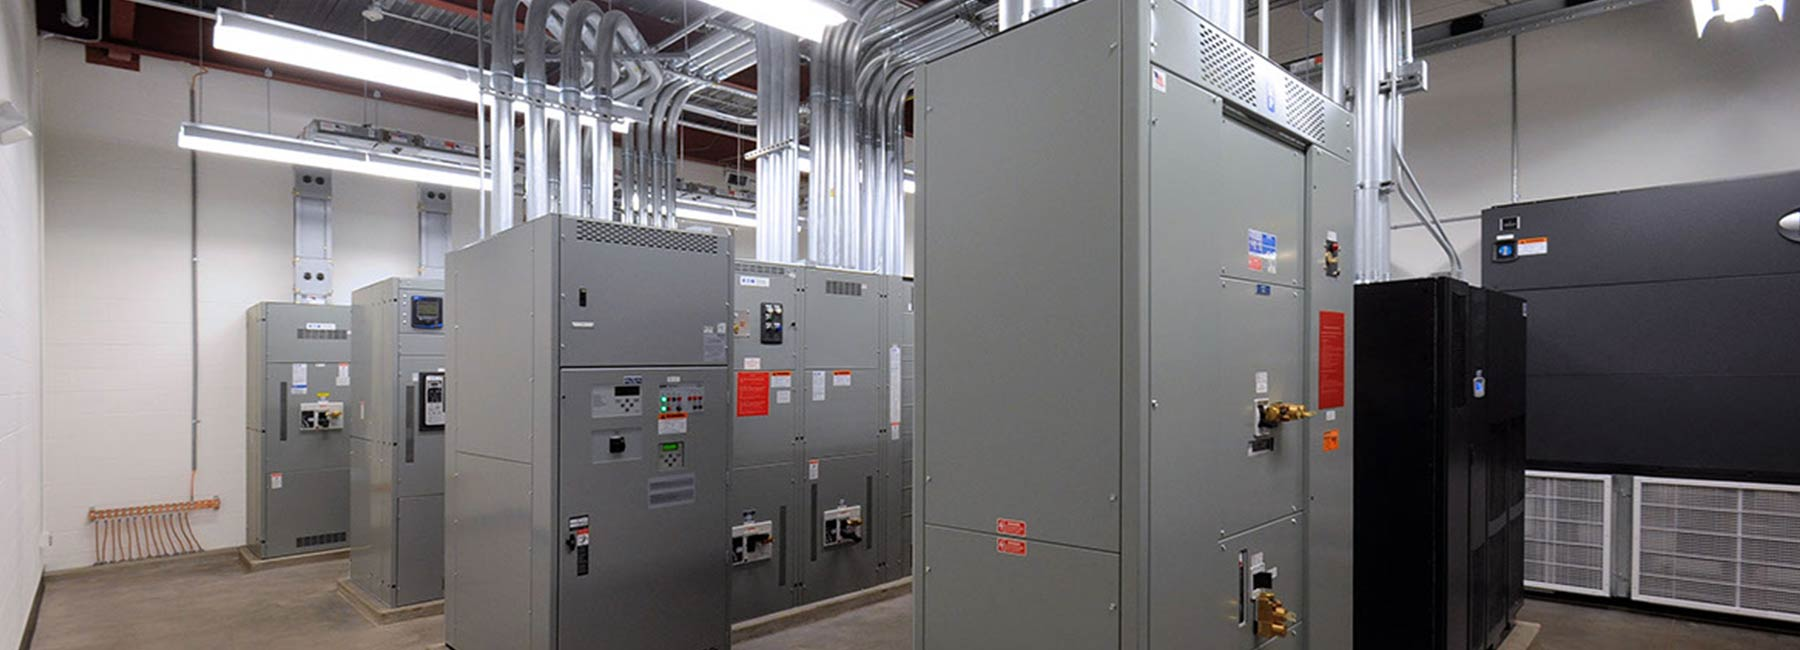 Allina Technology Center, Minneapolis Electrical Commissioning